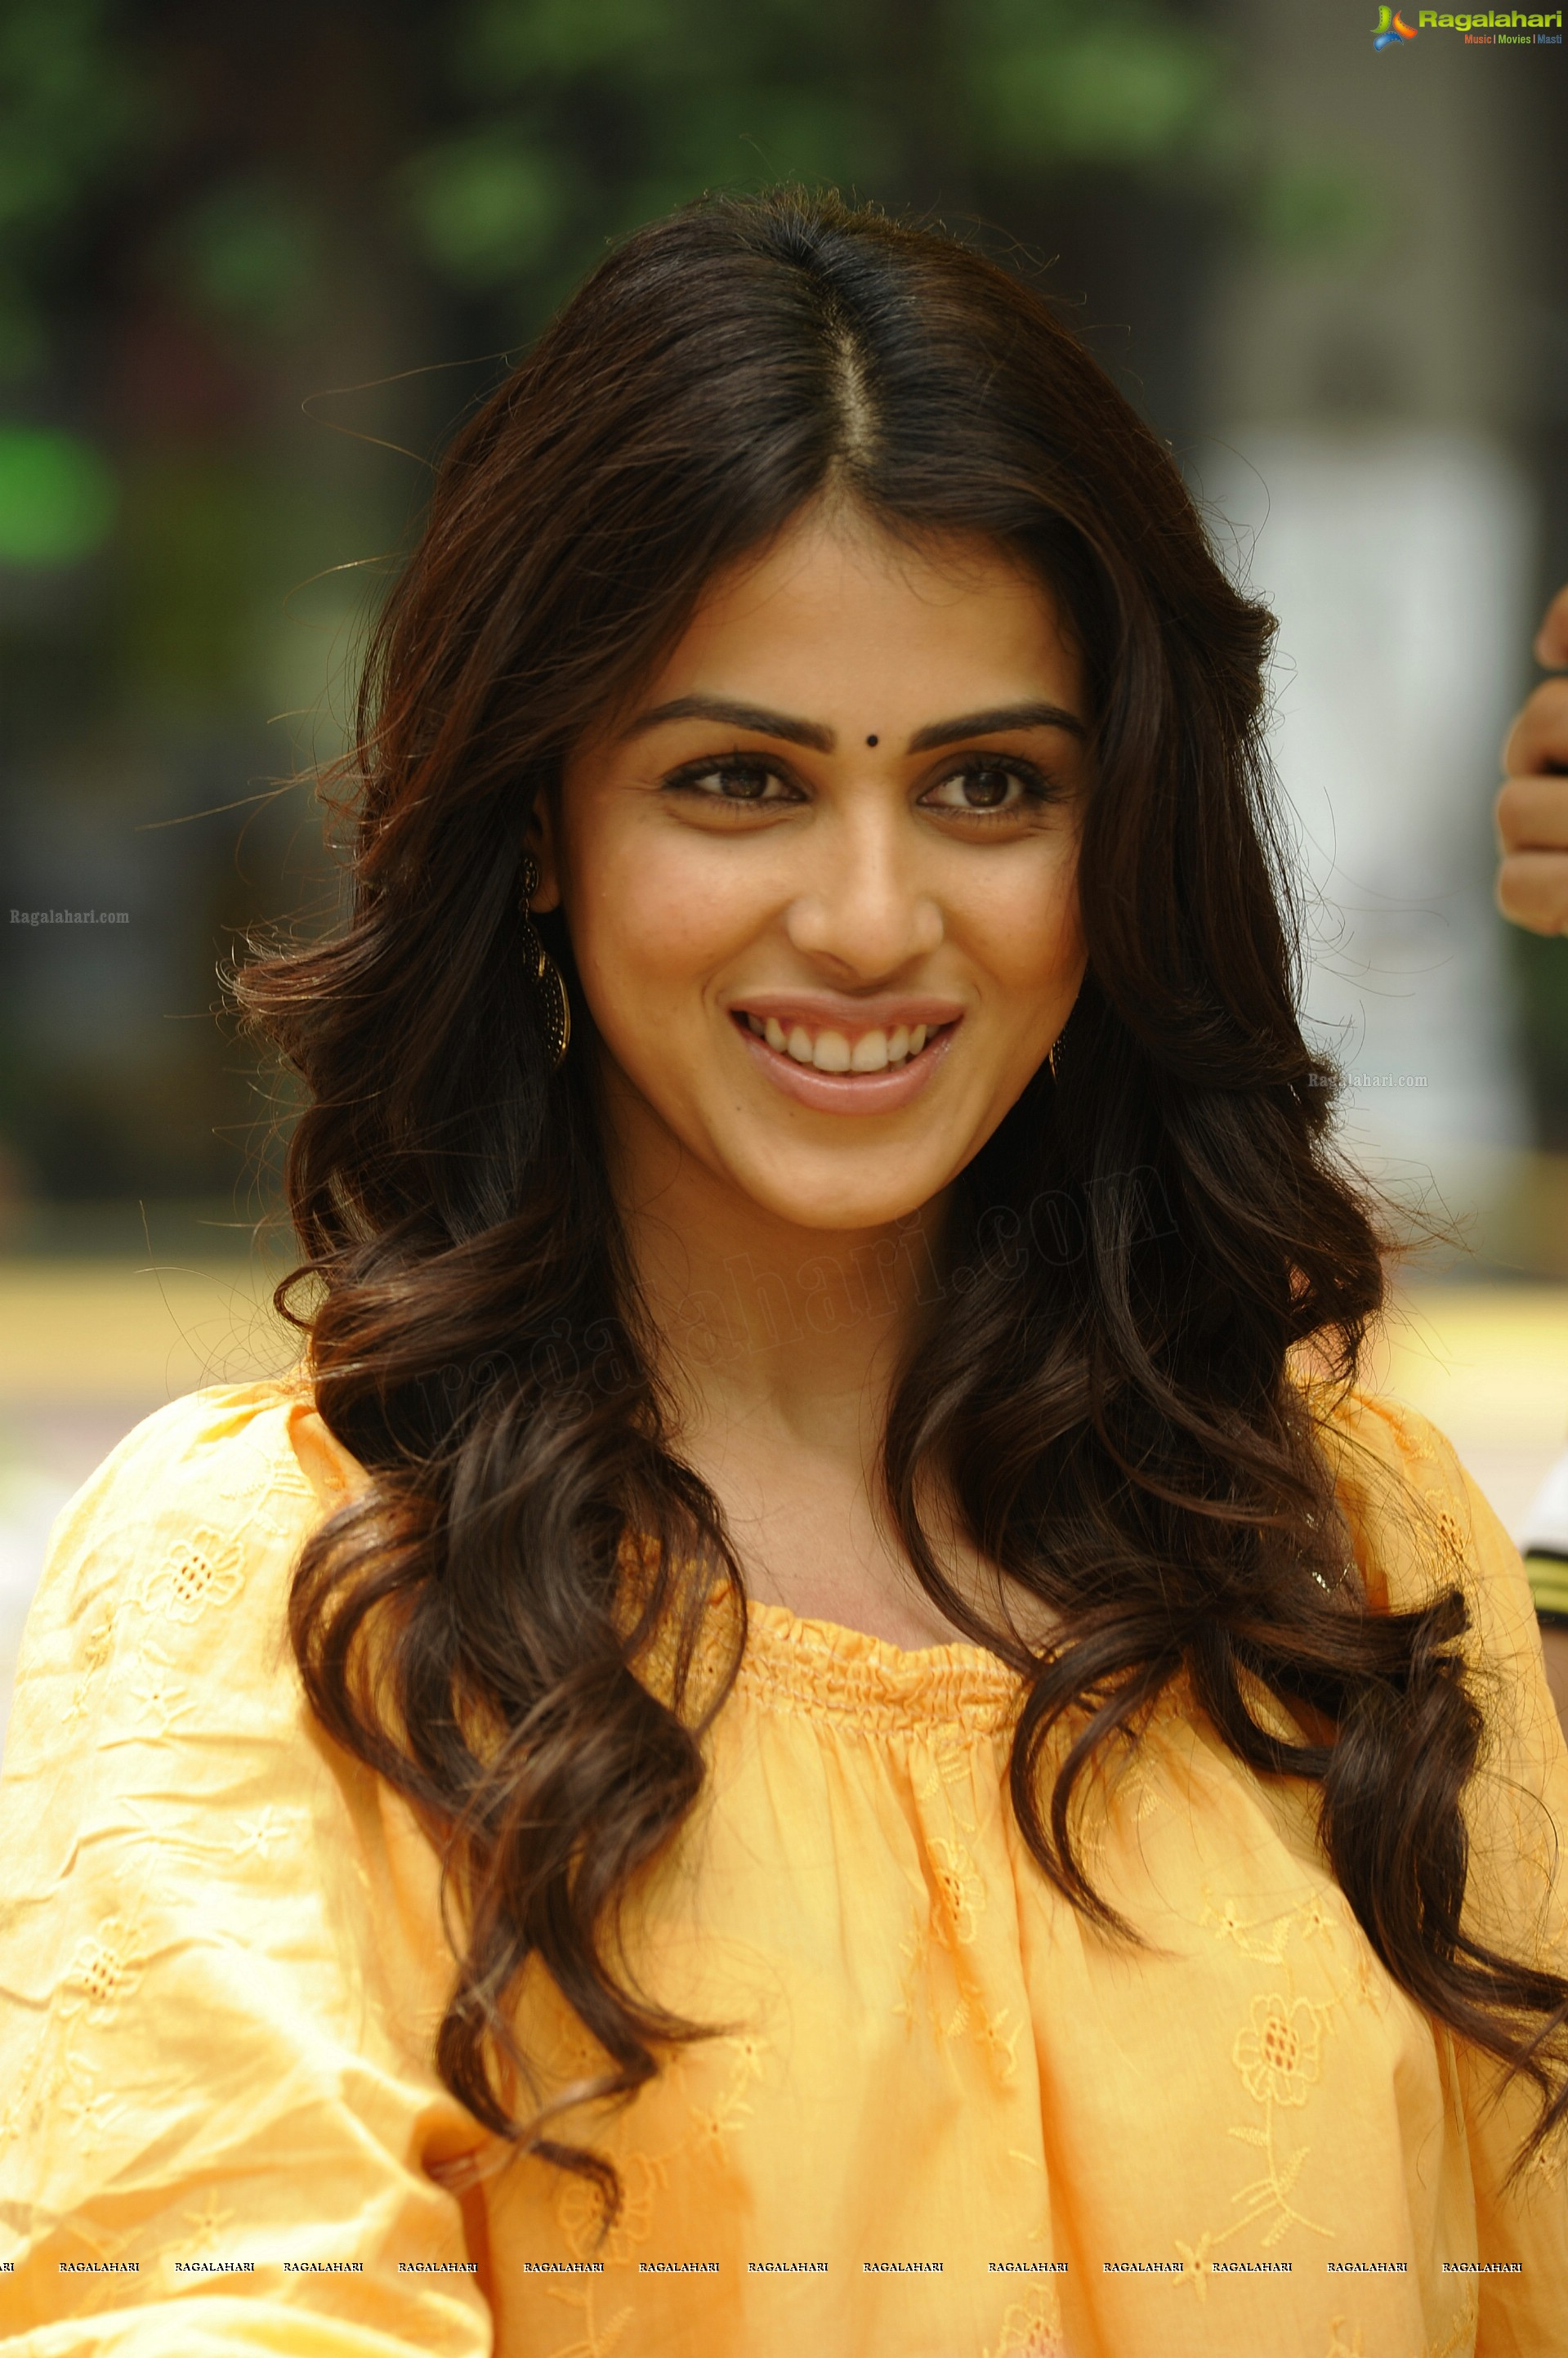 genelia (hd) image 16 | beautiful tollywood actress photos,images